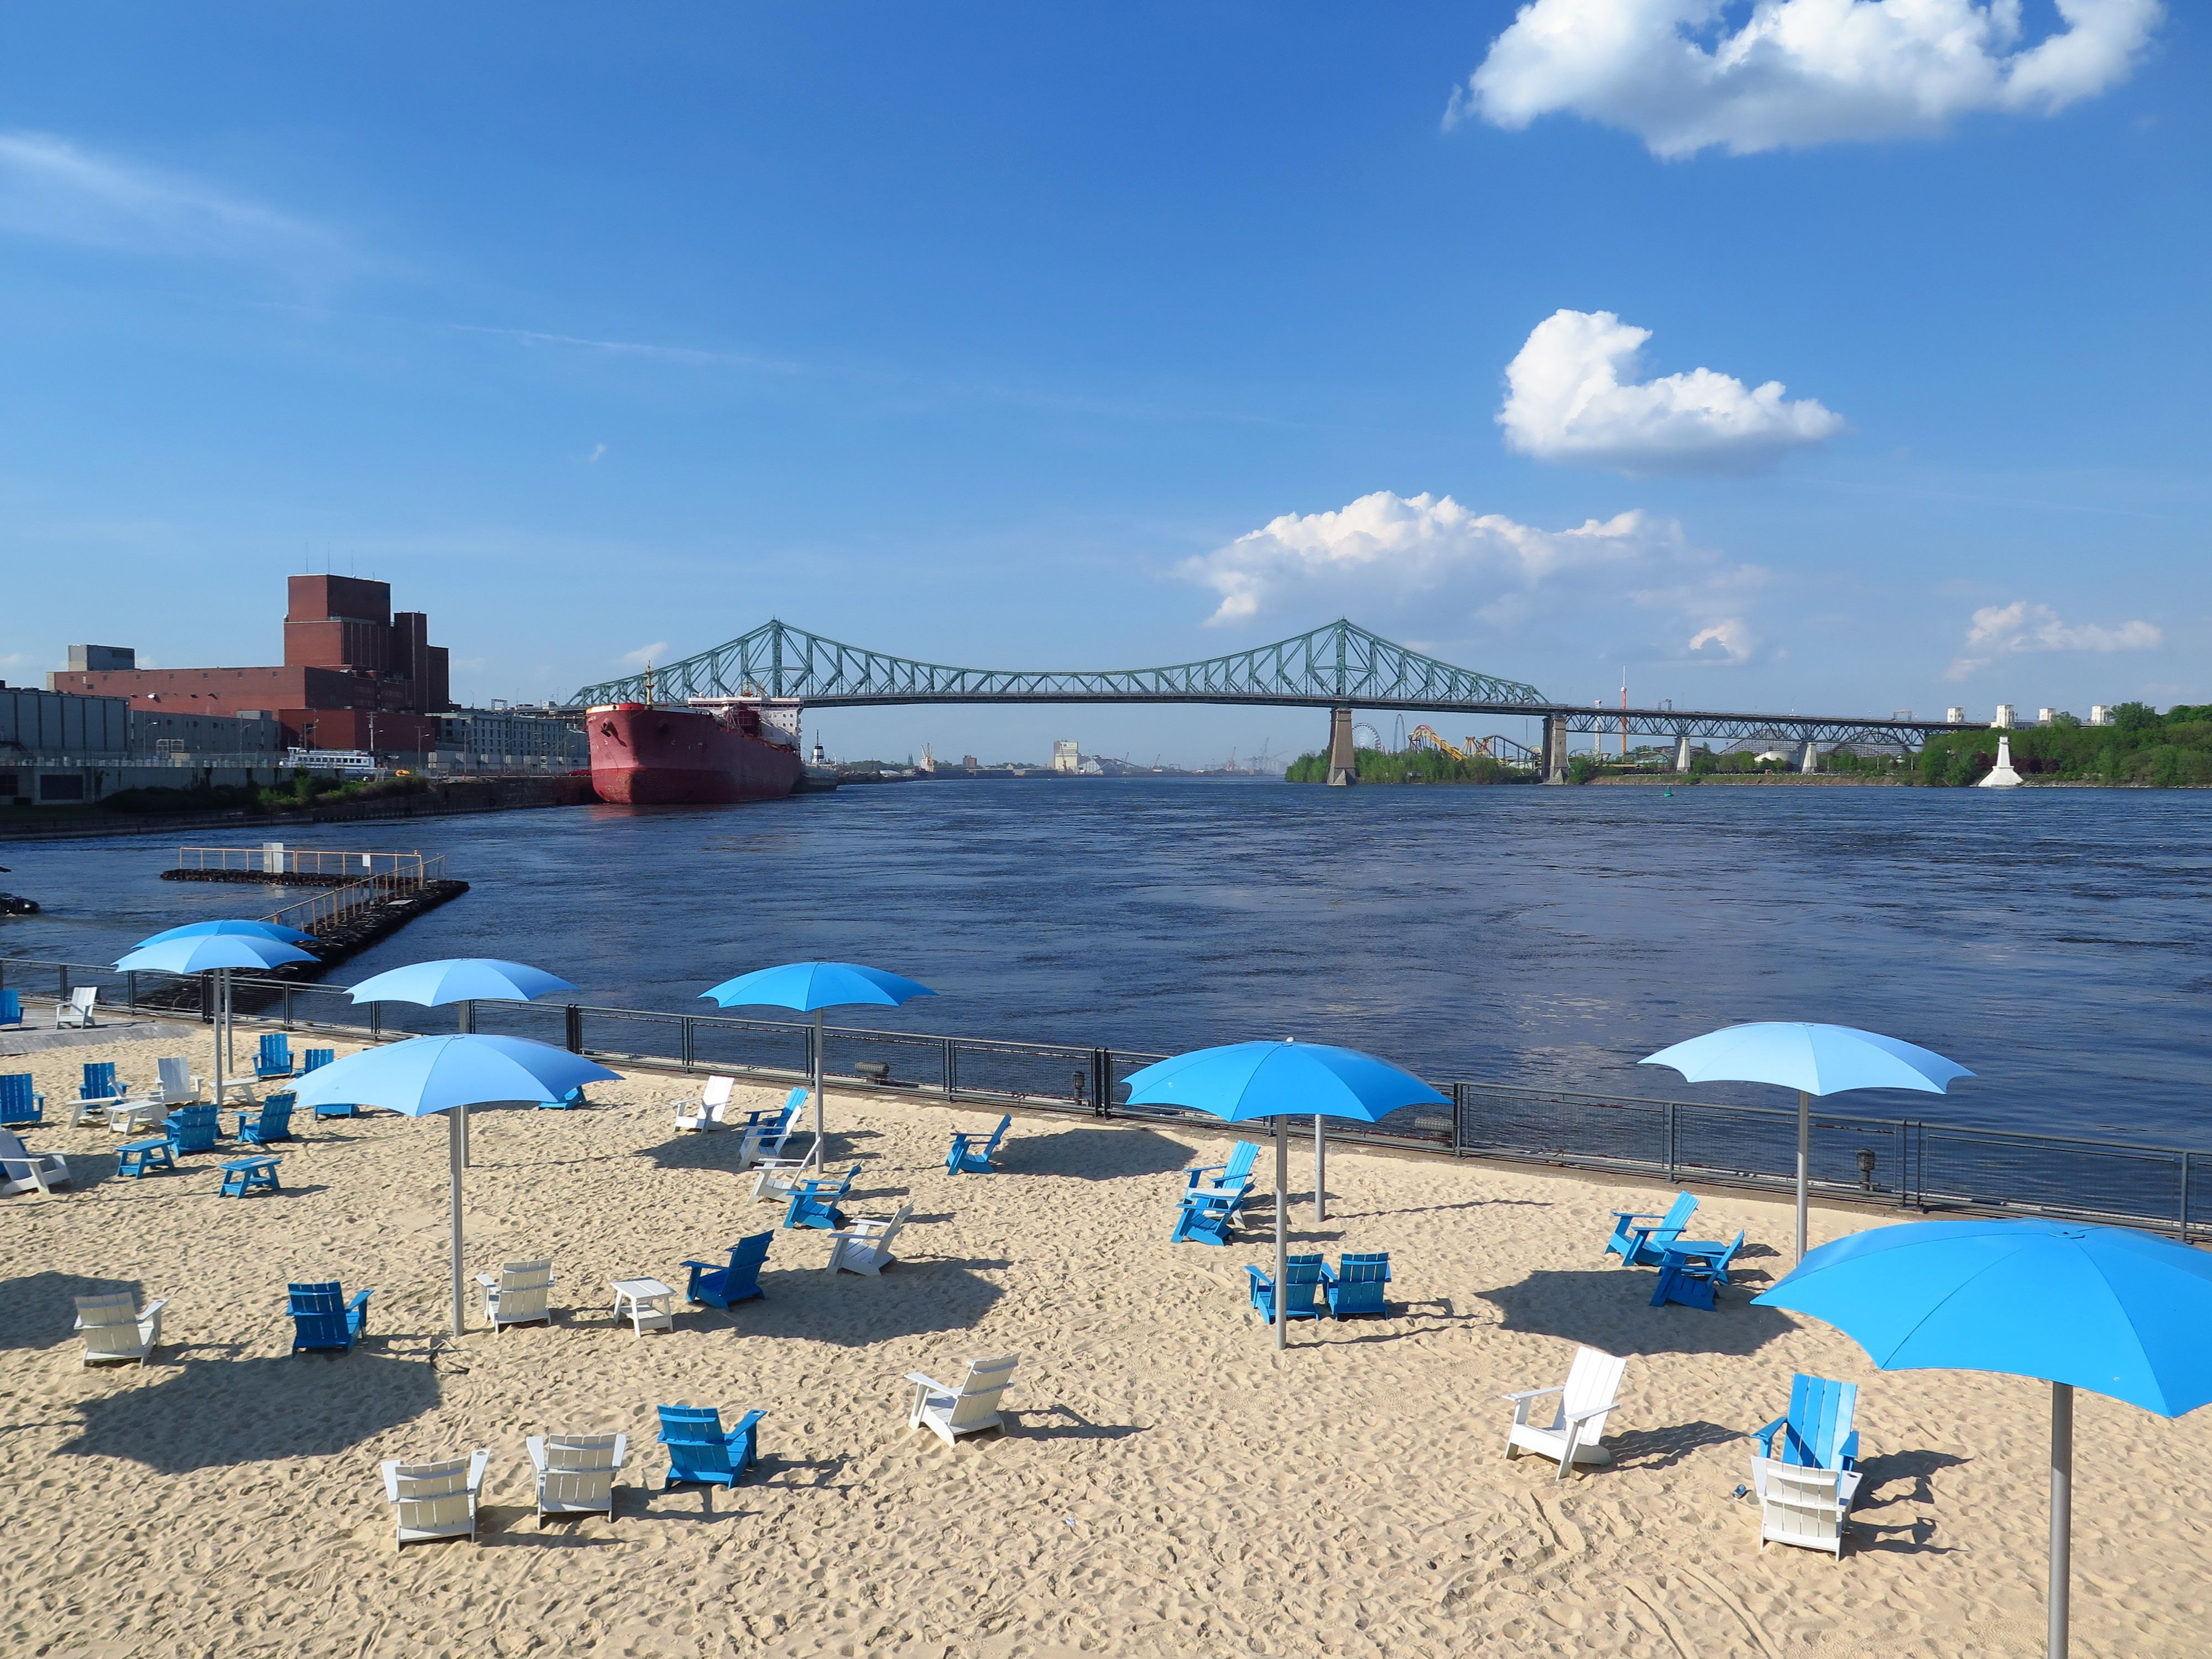 Cheap Auto Insurance >> Best Beaches in Montreal